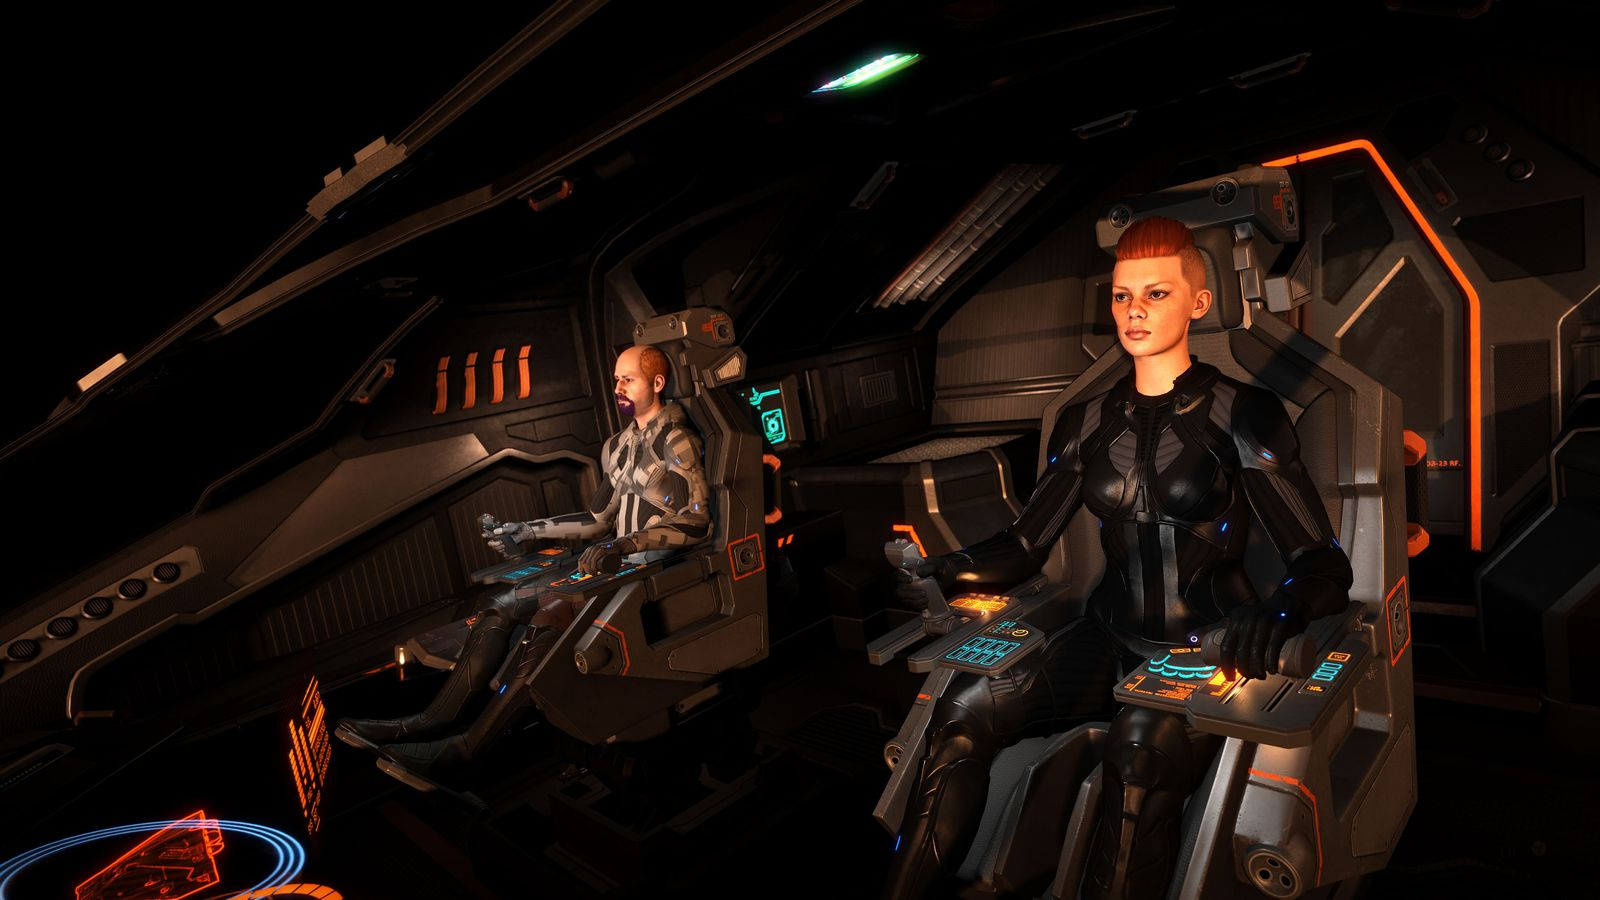 Kd Wallpaper Hd Elite Dangerous Update Adds Avatars To The Game Today